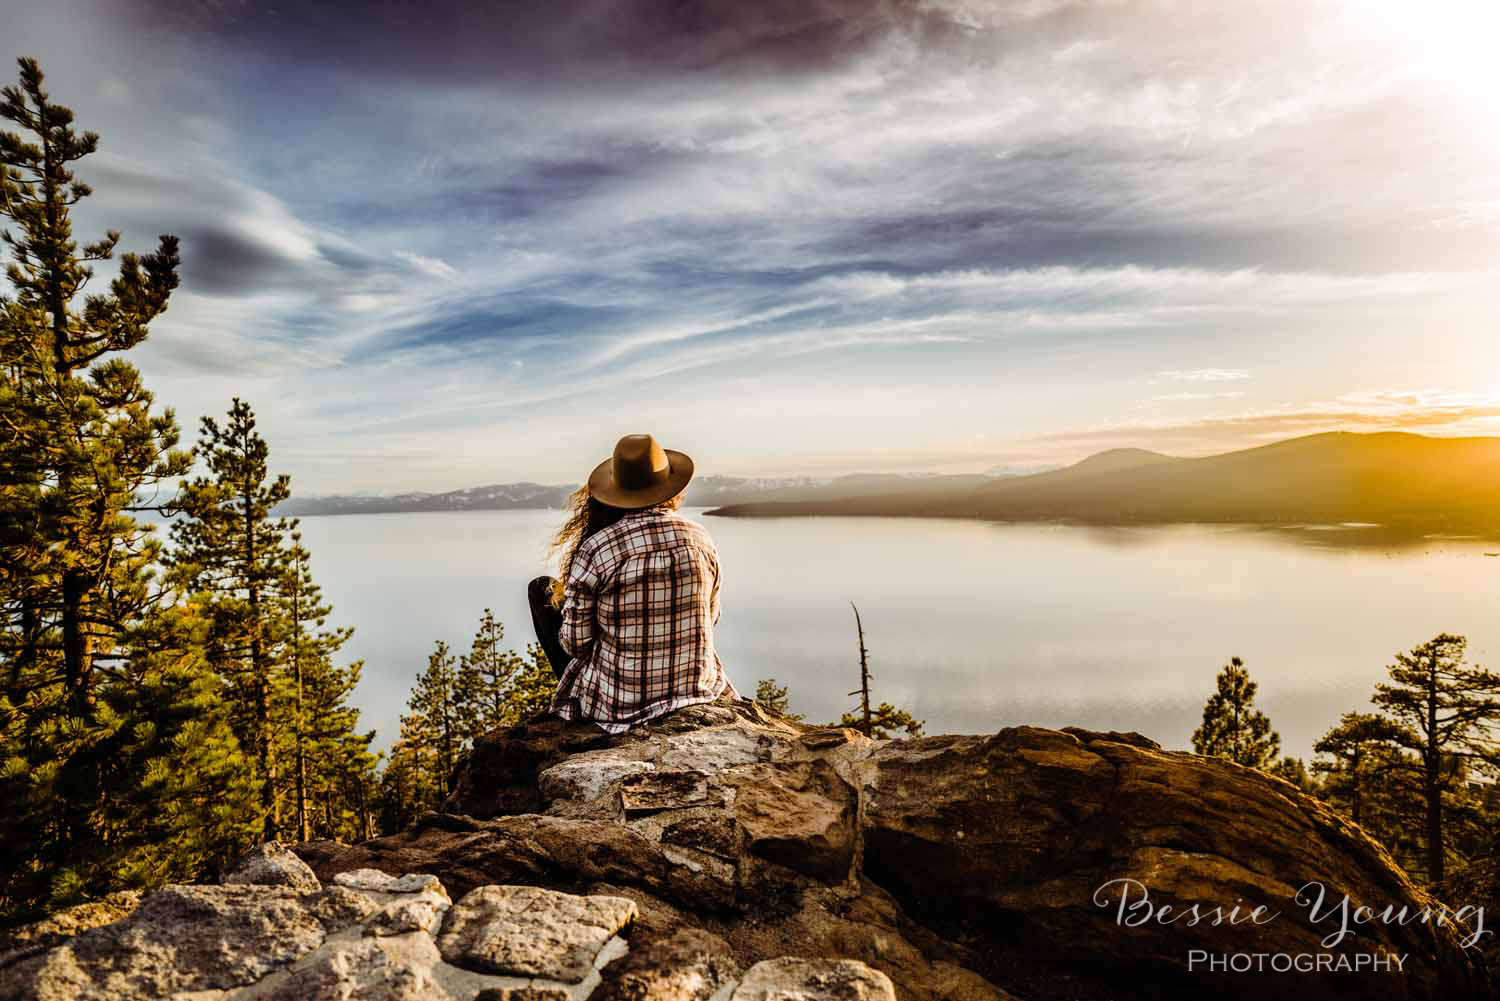 Tahoe Lake Photograph by Bessie Young Photography 2018 - adventure photograph - travel photograph - rustic home inspiration - rustic living room inspiration.jpg